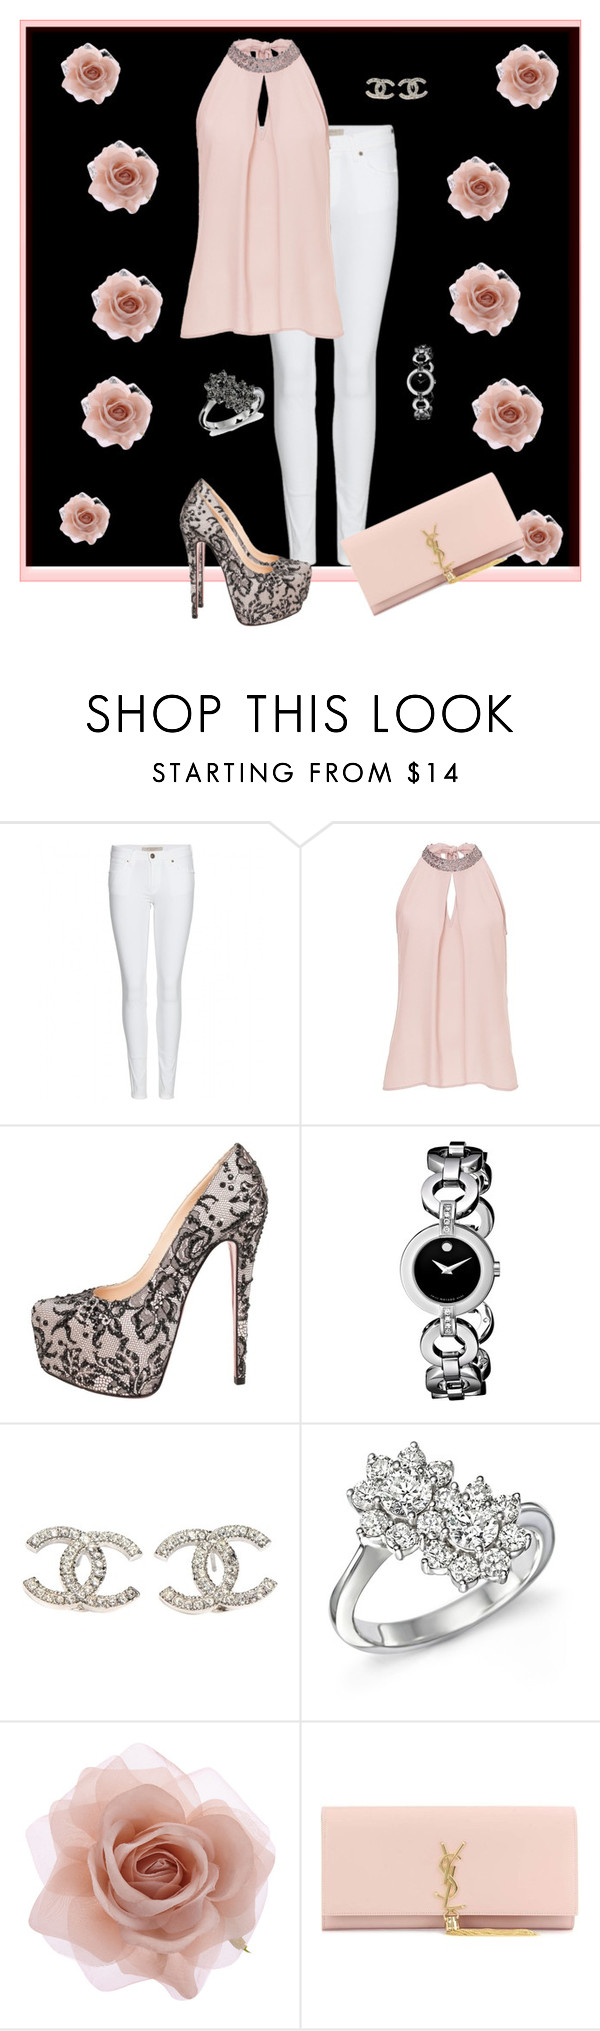 """""""In a meeting"""" by xan86 ❤ liked on Polyvore featuring Burberry, Vera Mont, Christian Louboutin, Movado, Chanel, Bloomingdale's, Accessorize and Yves Saint Laurent"""